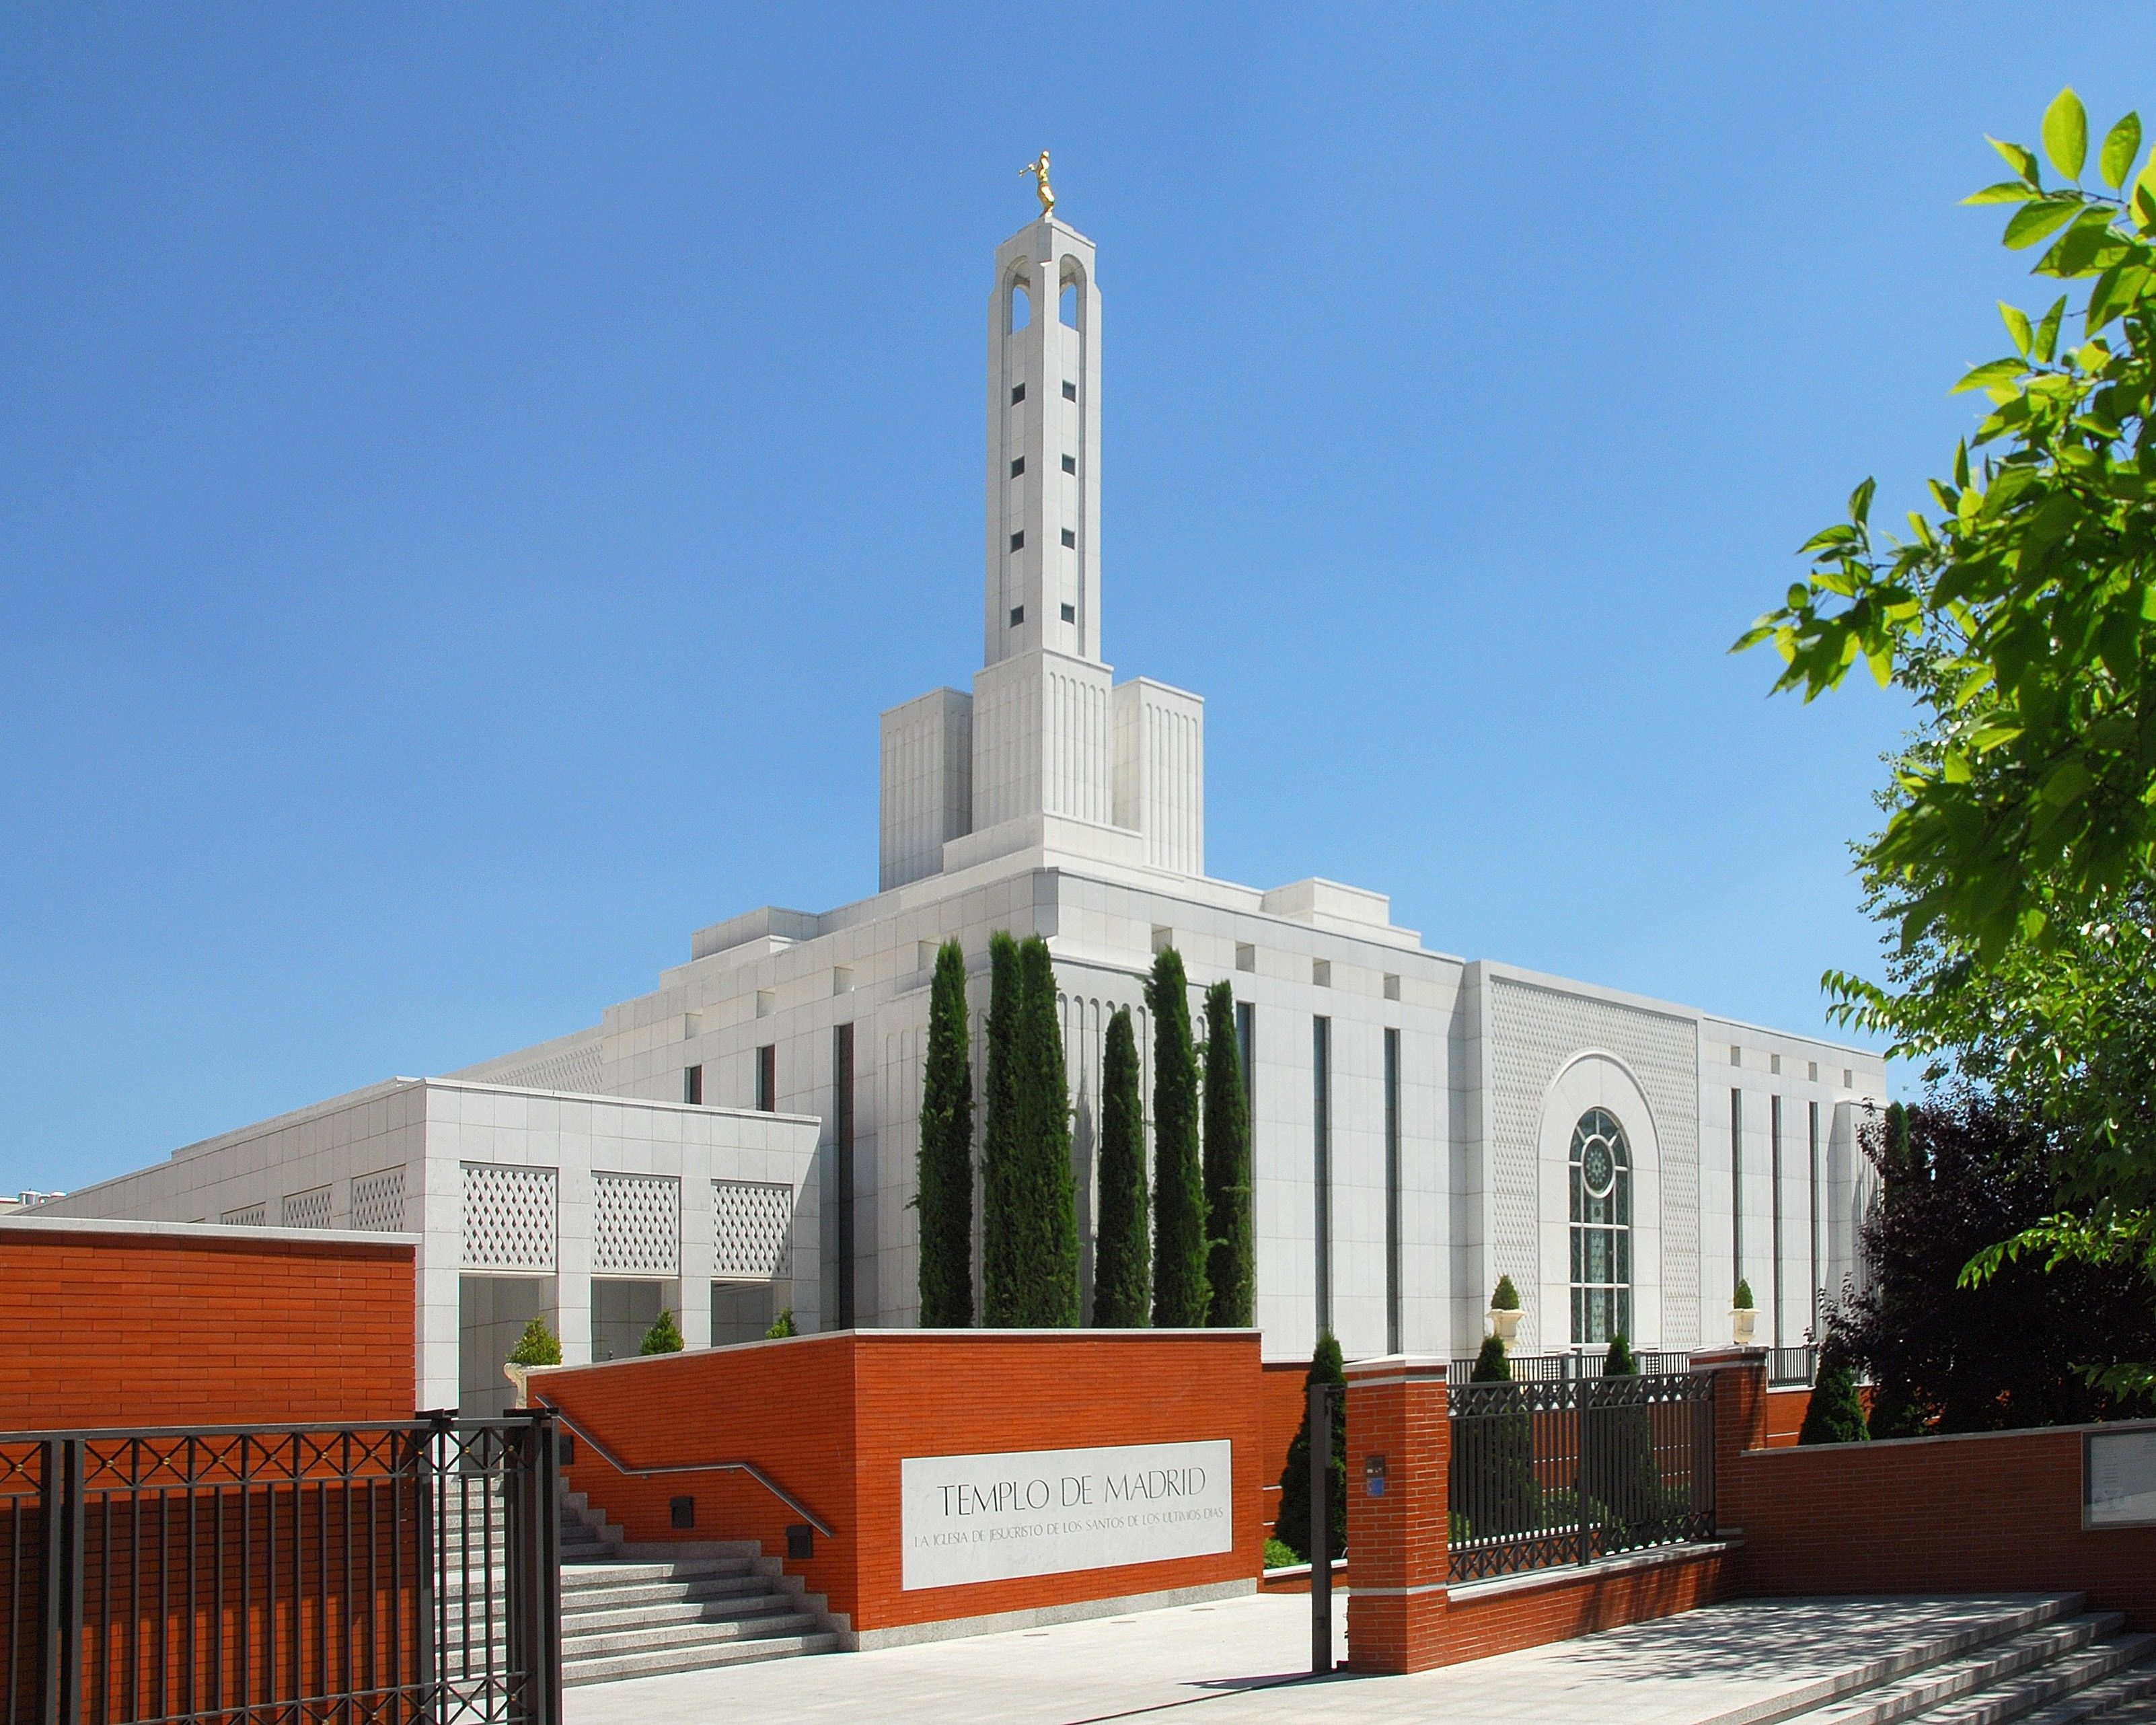 The Madrid Spain Temple name sign, including scenery and the exterior of the temple.